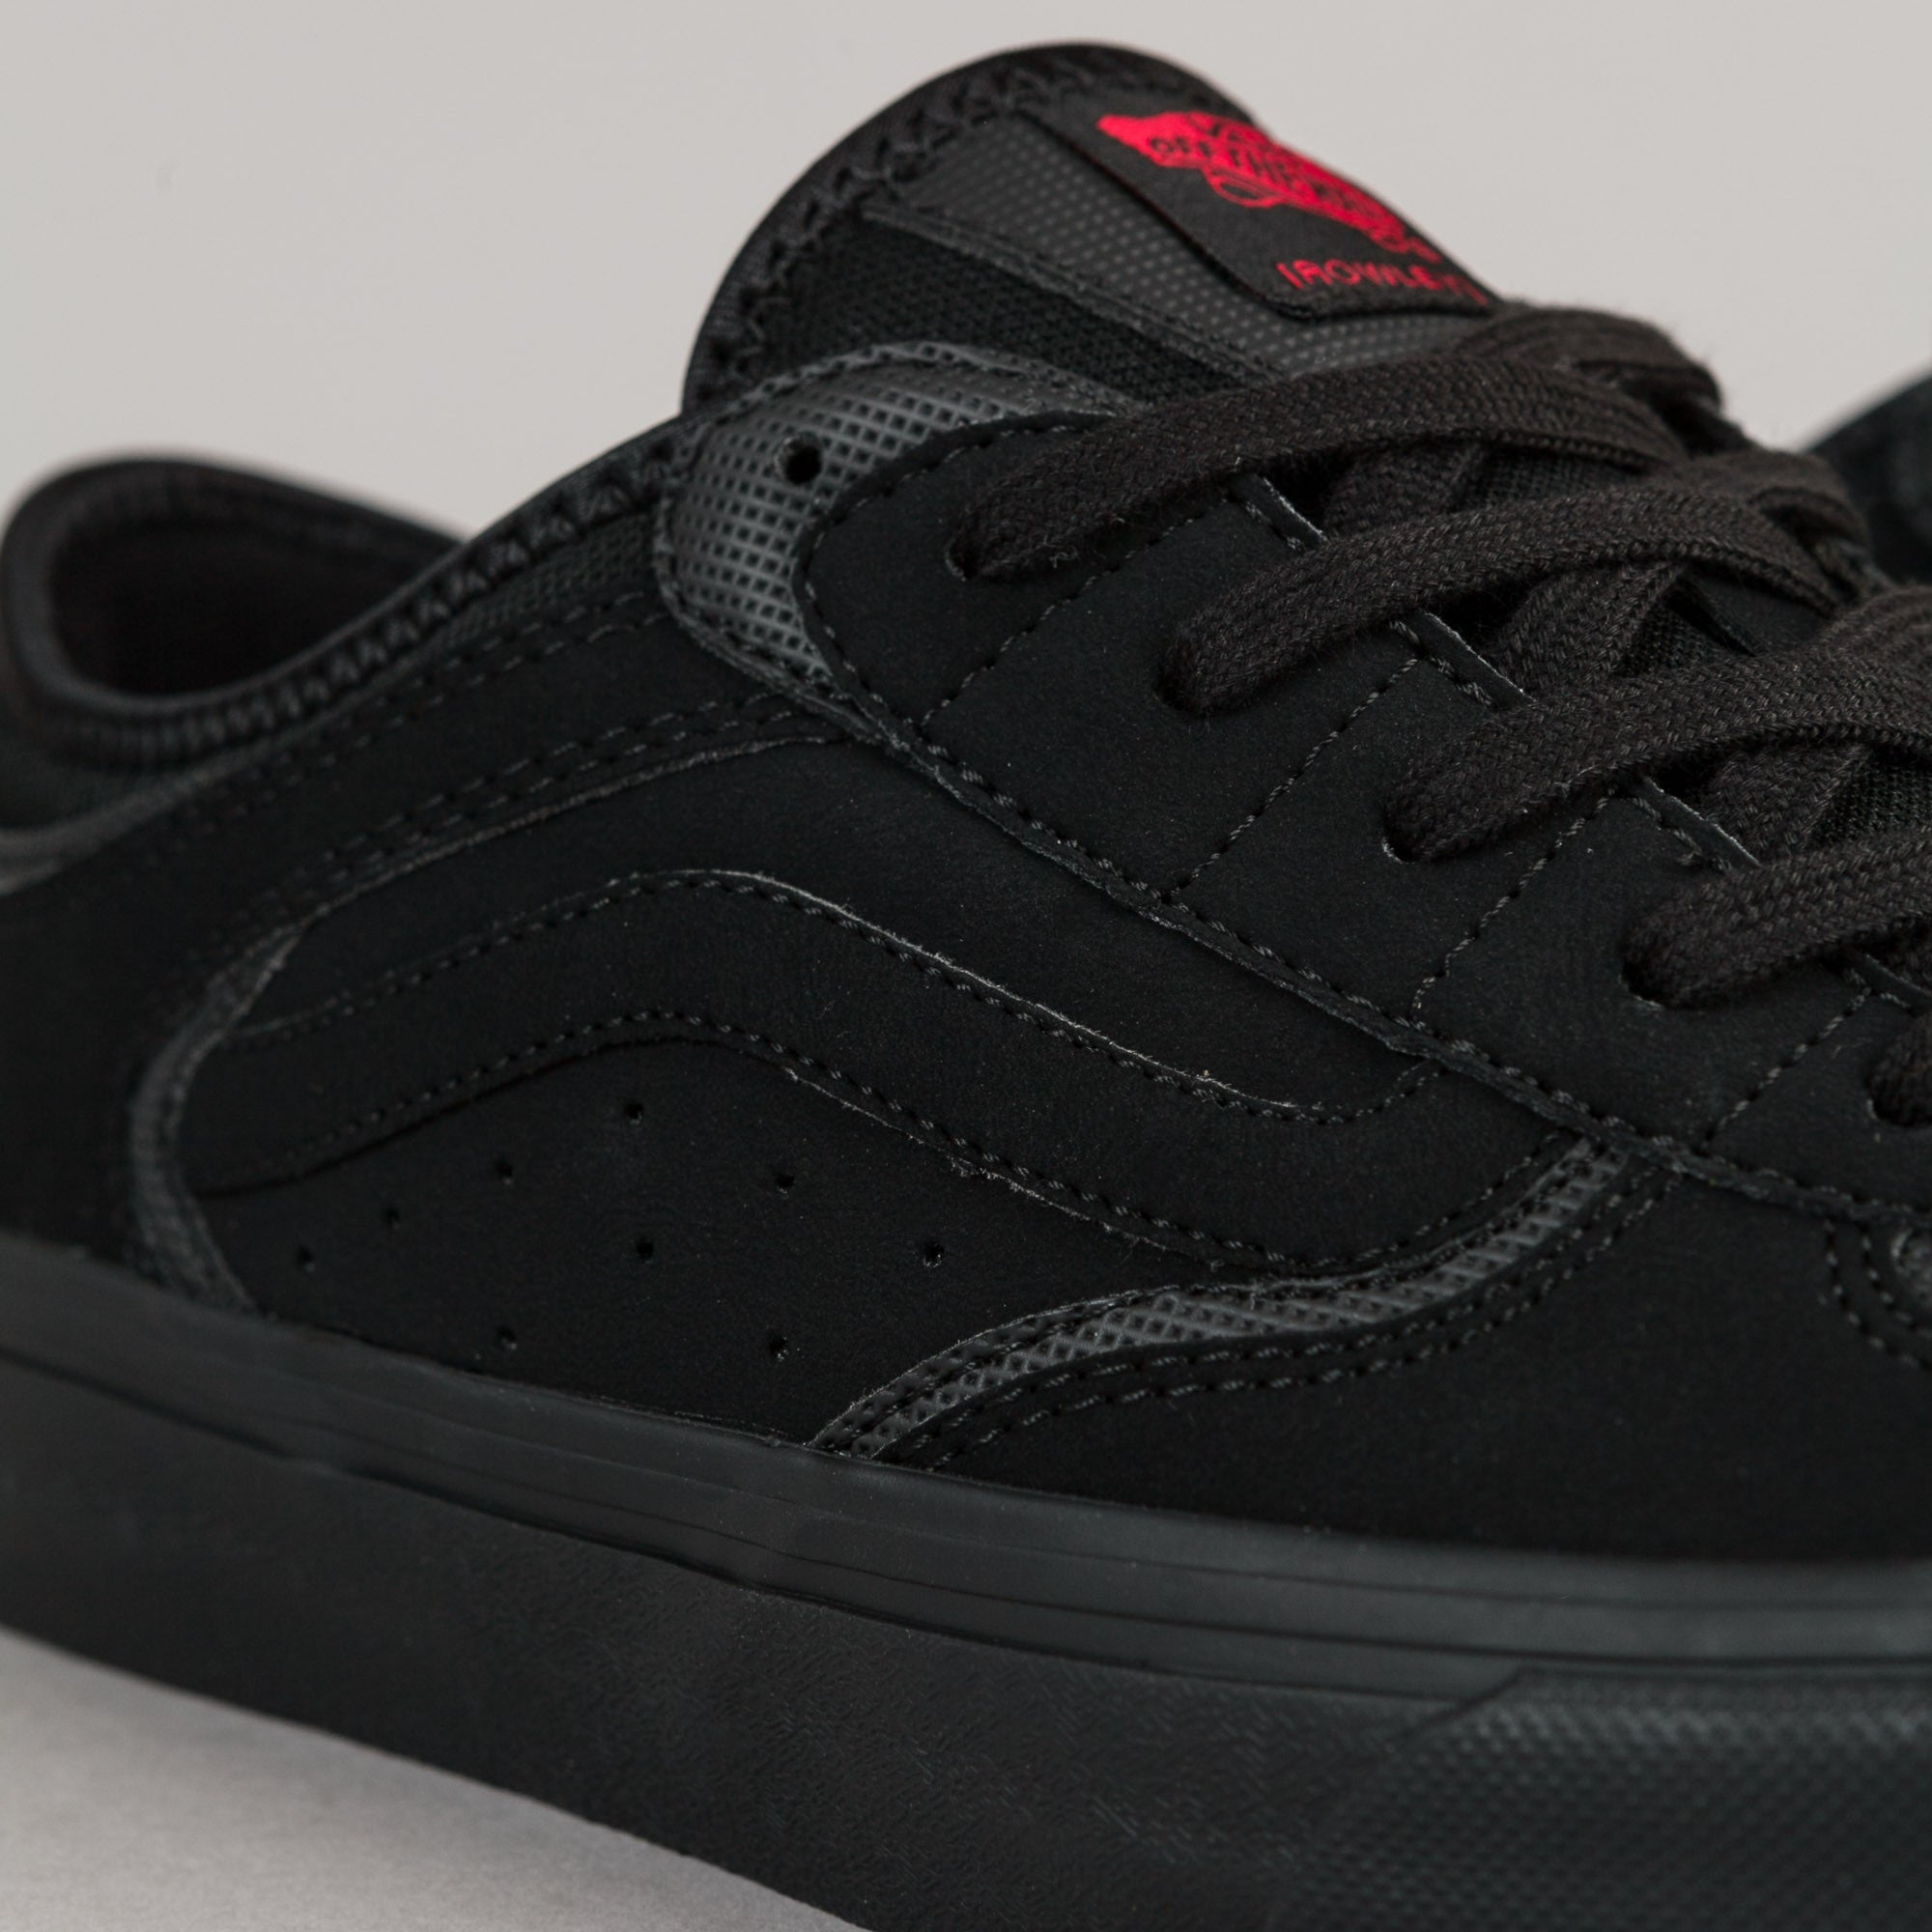 Vans 50th Rowley Pro '00 Shoes - Black / Black